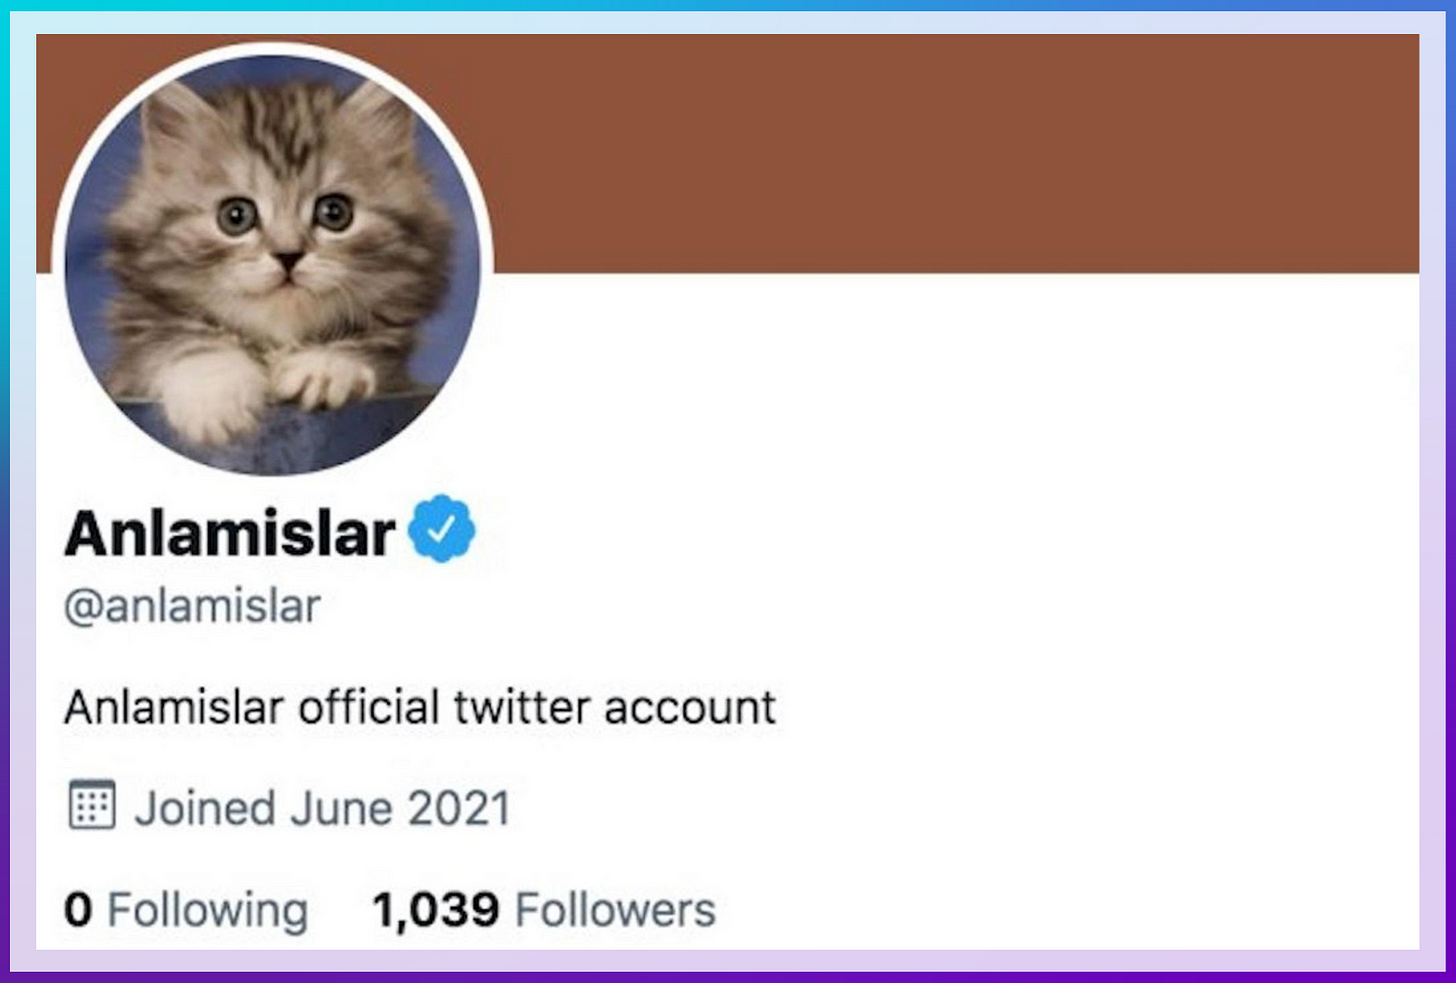 Image: Fake User Profile of Cat Verified By Twitter with Blue Check. Color: Blue. Direction: Left to Right. Anlamislar @anlamislar Anslamislar official twitter account. Joined June 2021. 0 Following. 1,039 Followers.